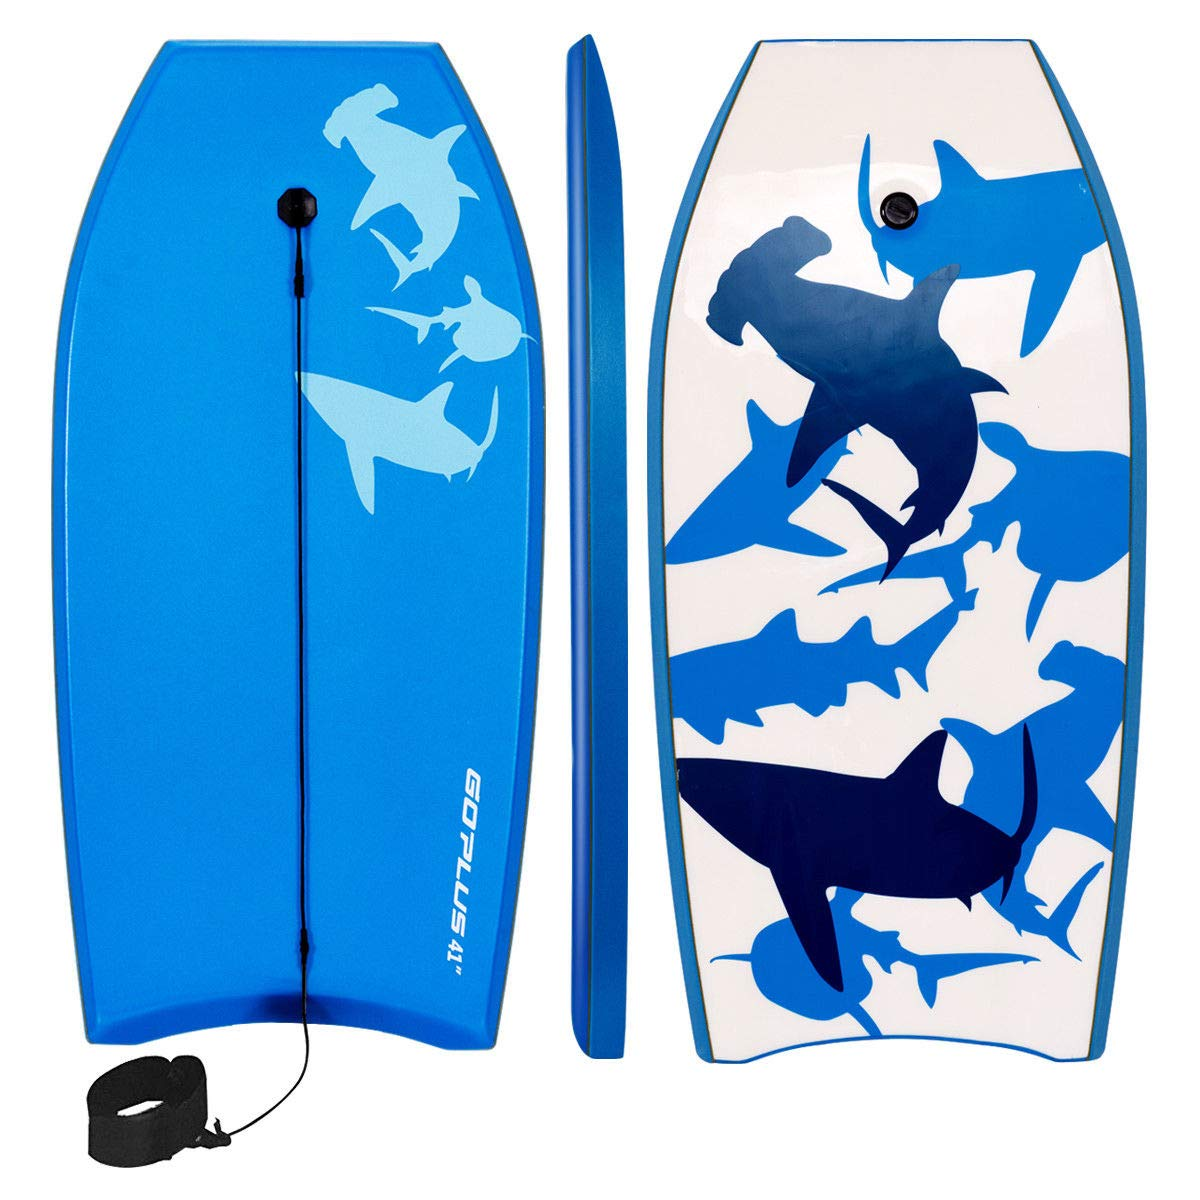 Goplus 41 inch Super Bodyboard Body Board EPS Core, IXPE Deck, HDPE Slick Bottom with Leash, Light Weight Perfect Surfing for Kids and Adults (Blue) by Goplus